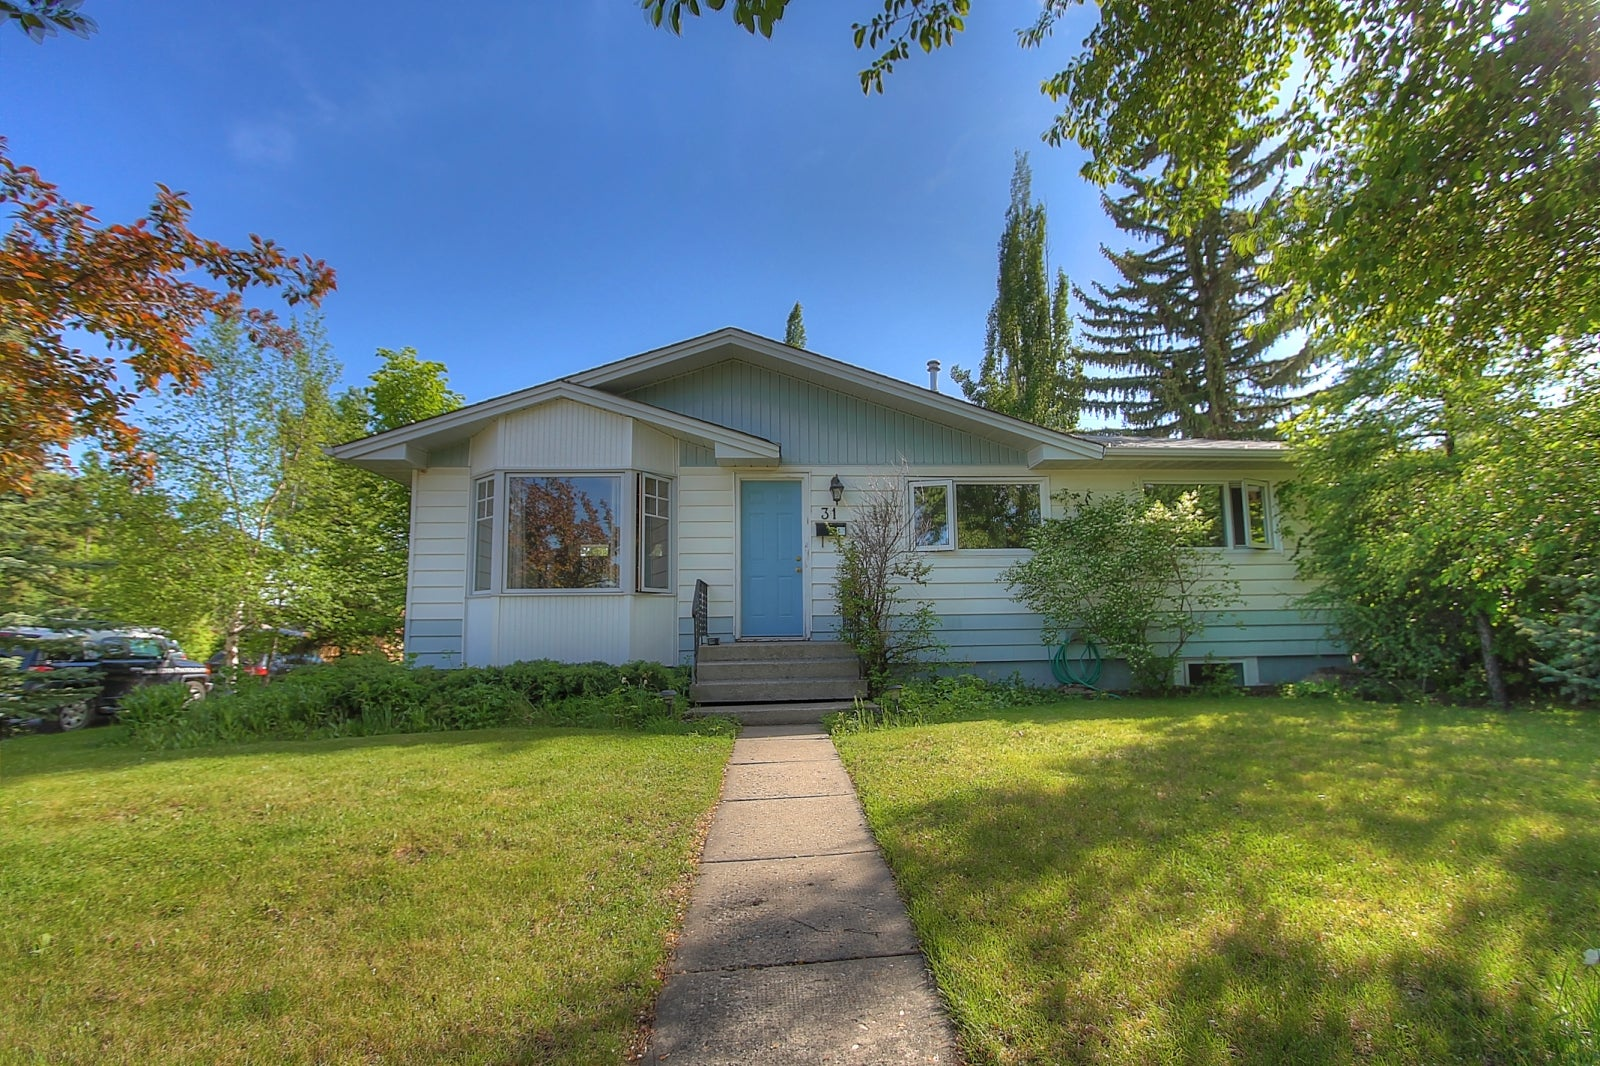 SOLD! Over Asking in 1 day!